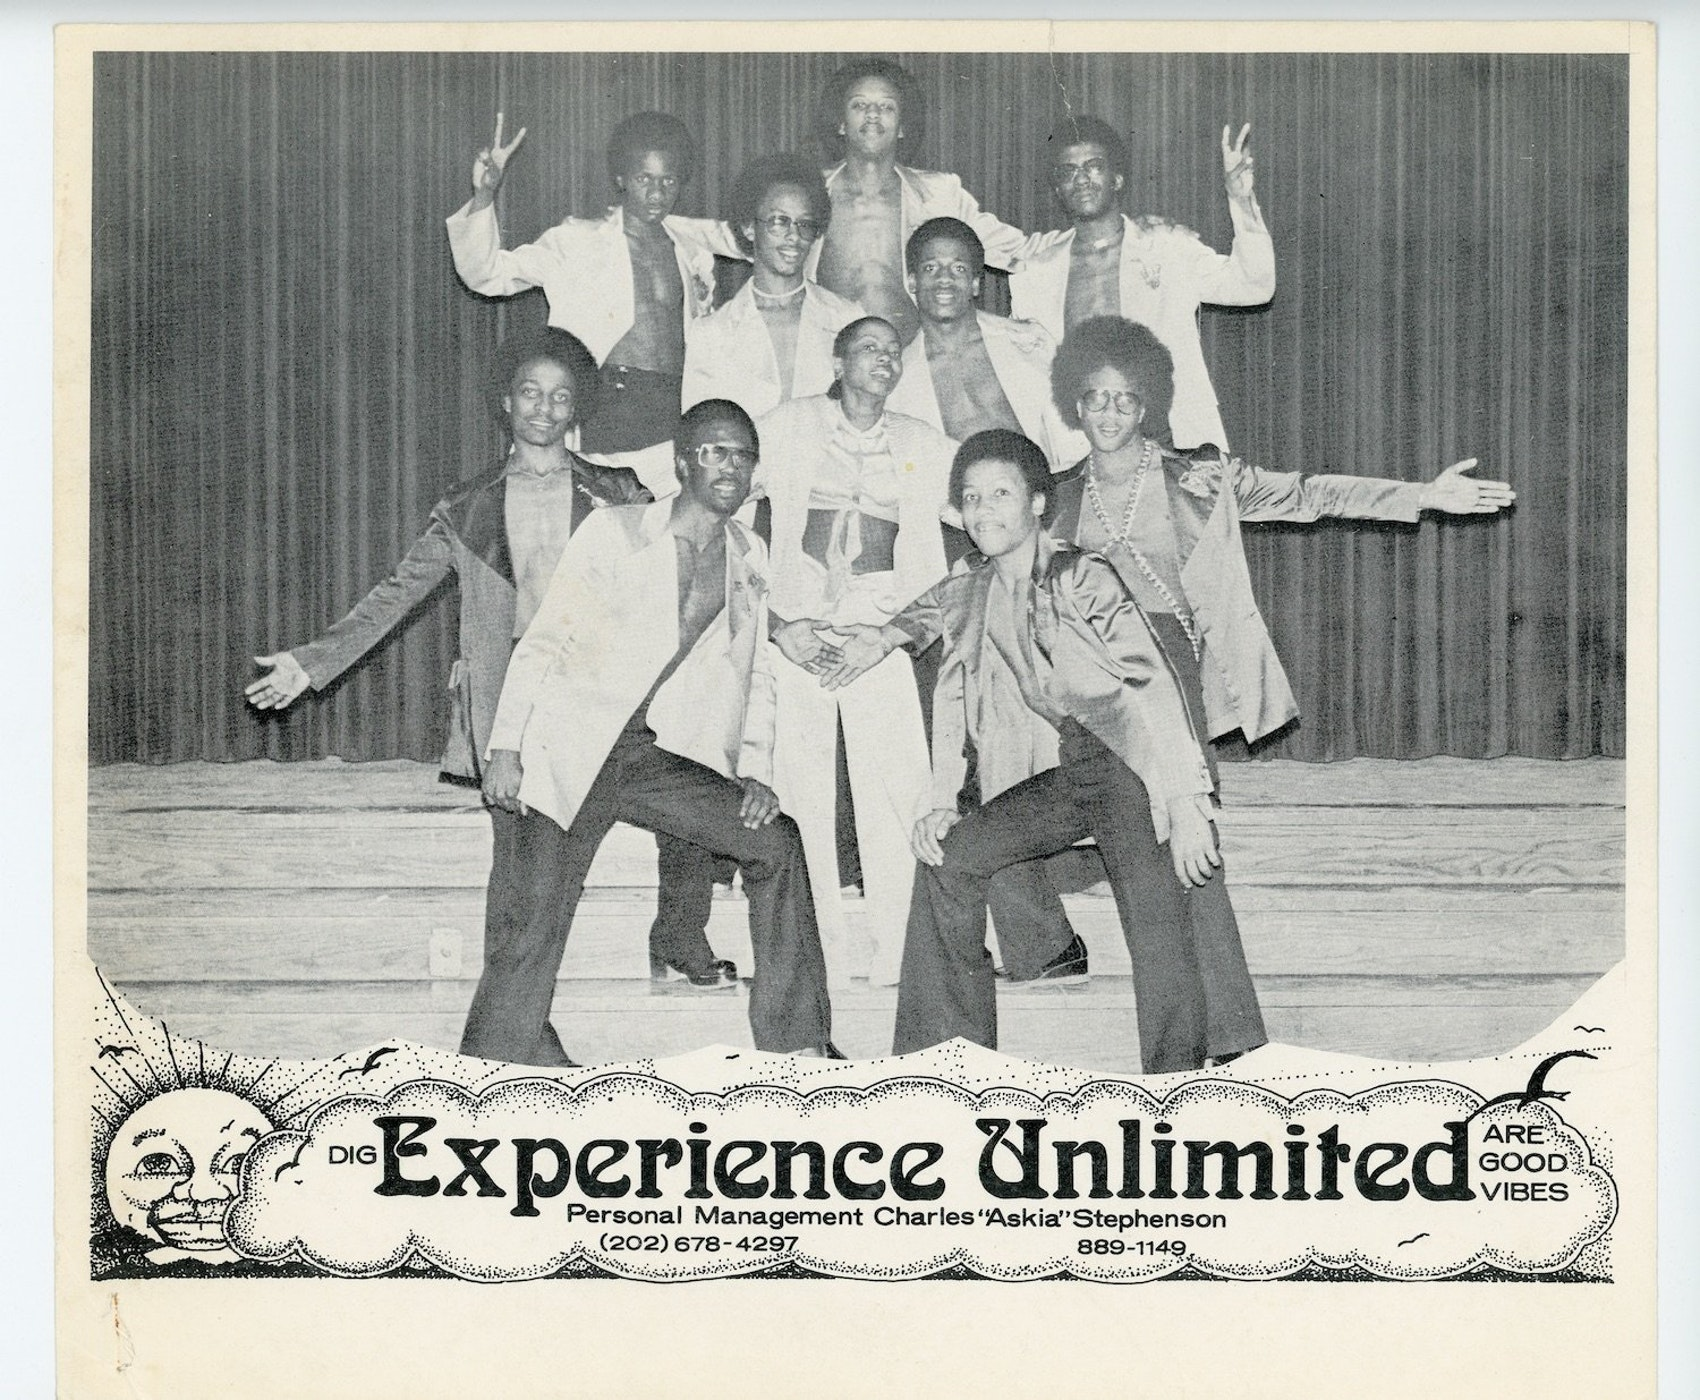 A '70s era Experience Unlimited promo photo.